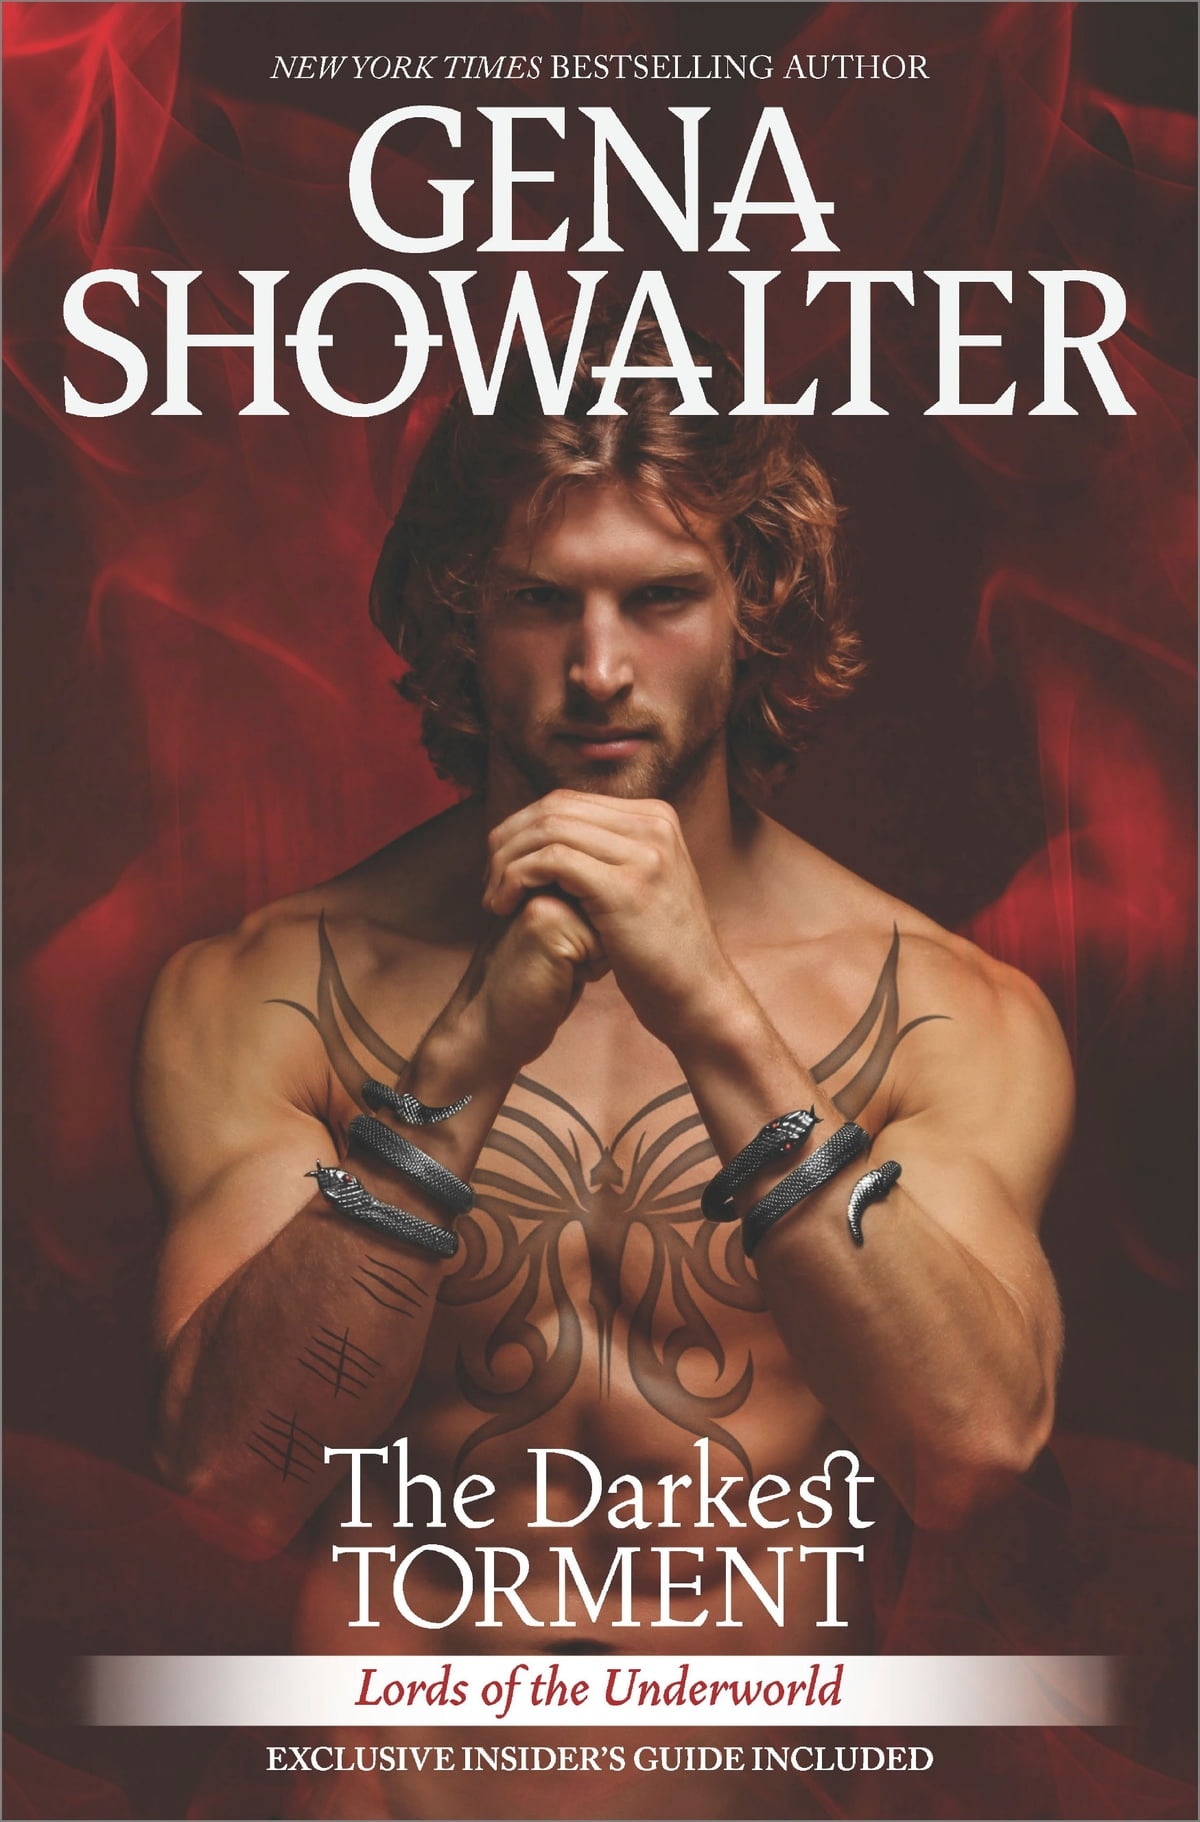 The Darkest Torment  A Spellbinding Paranormal Romance Novel Ebook By Gena  Showalter